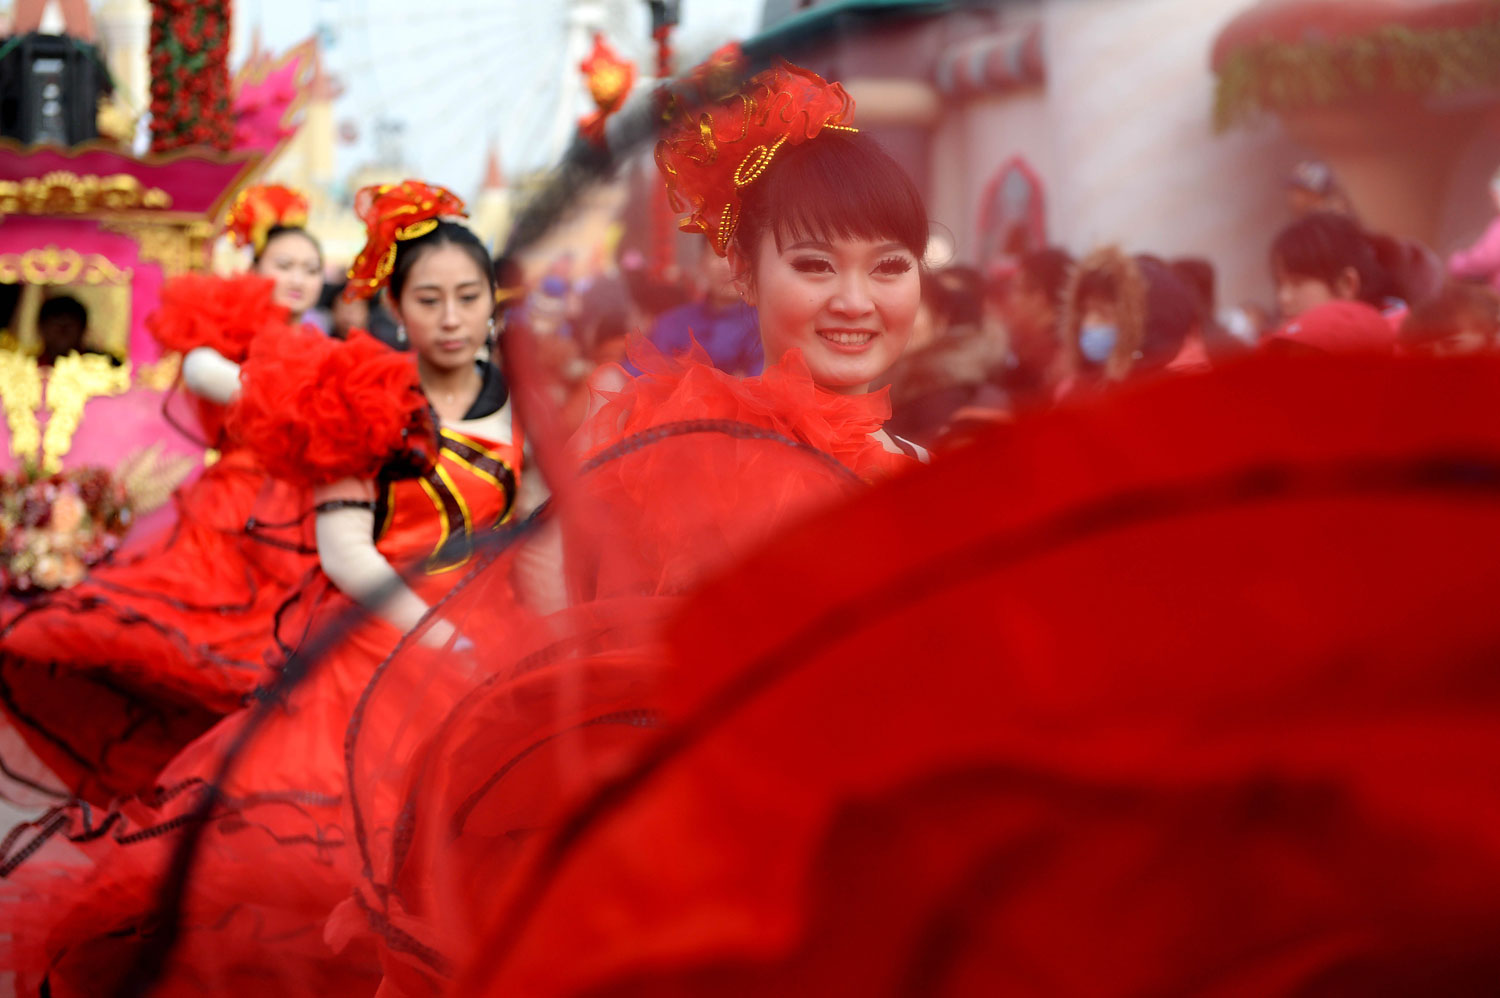 Performers dance during a temple fair to celebrate the Spring Festival, or the Chinese Lunar New Year, in Beijing, Jan. 31, 2014.